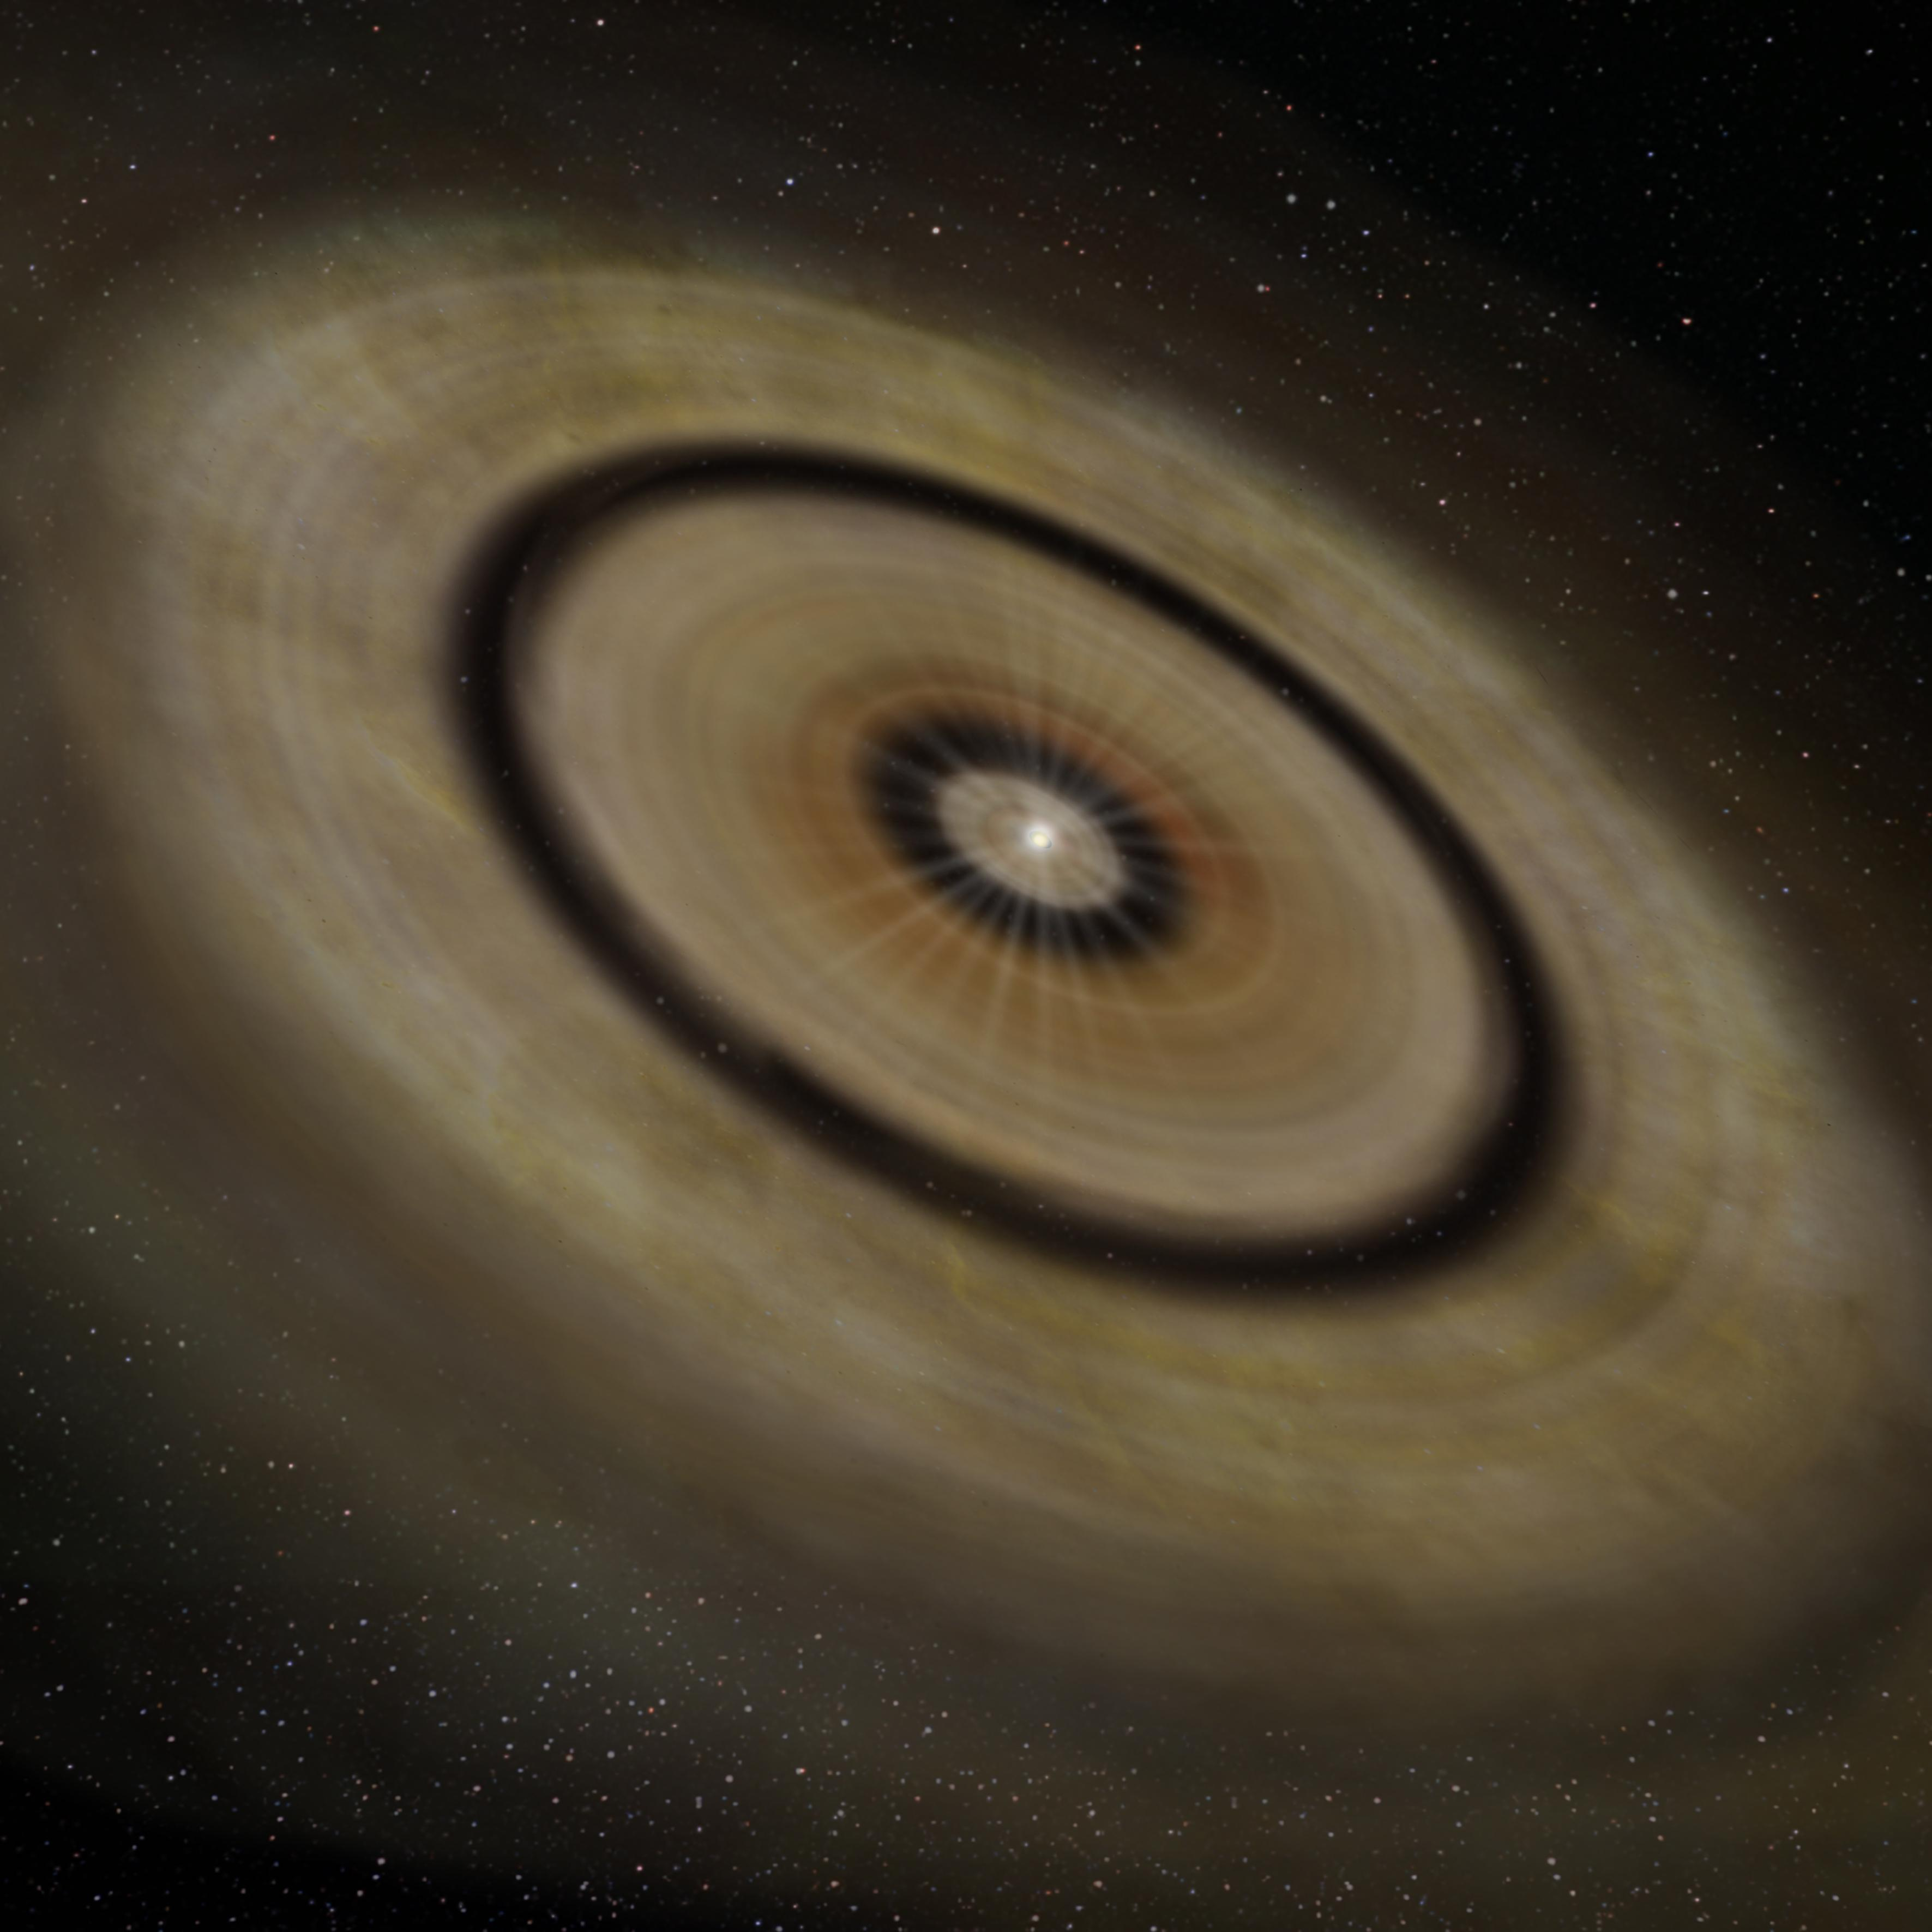 Discovery of Multiple Ring-Like Gaps in a Protoplanetary Disk Figure2